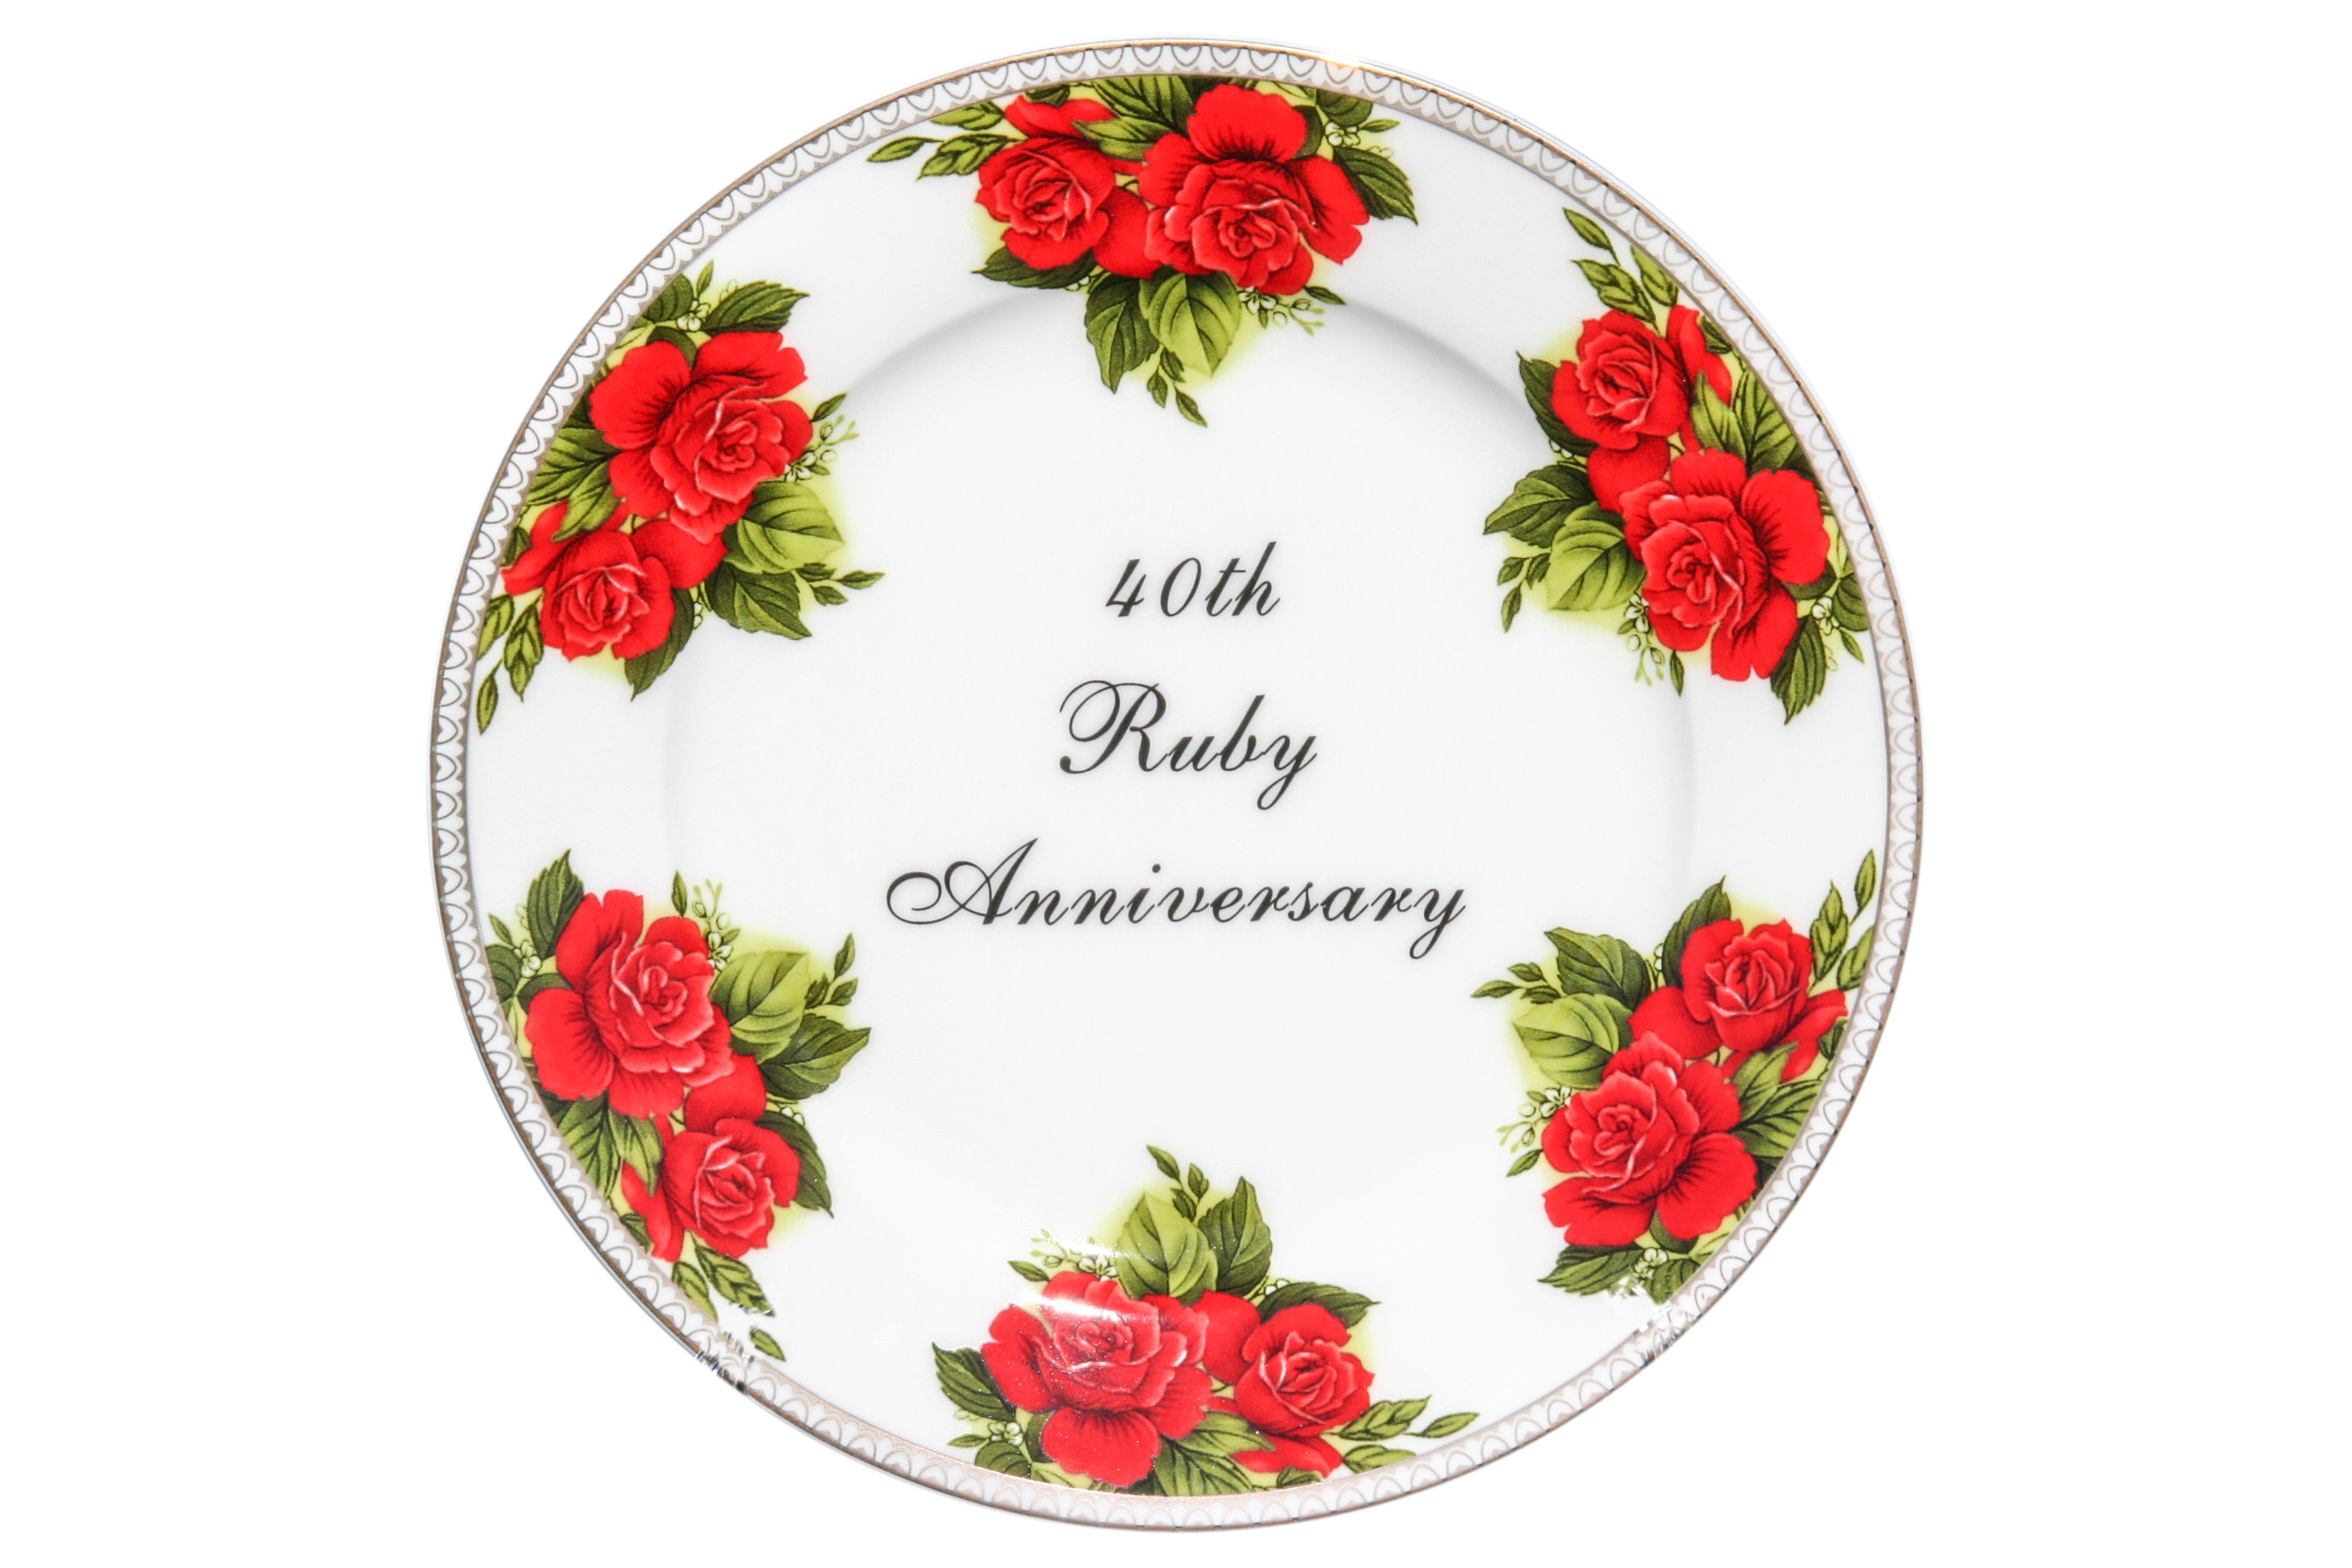 40th Ruby Anniversary Display Plate